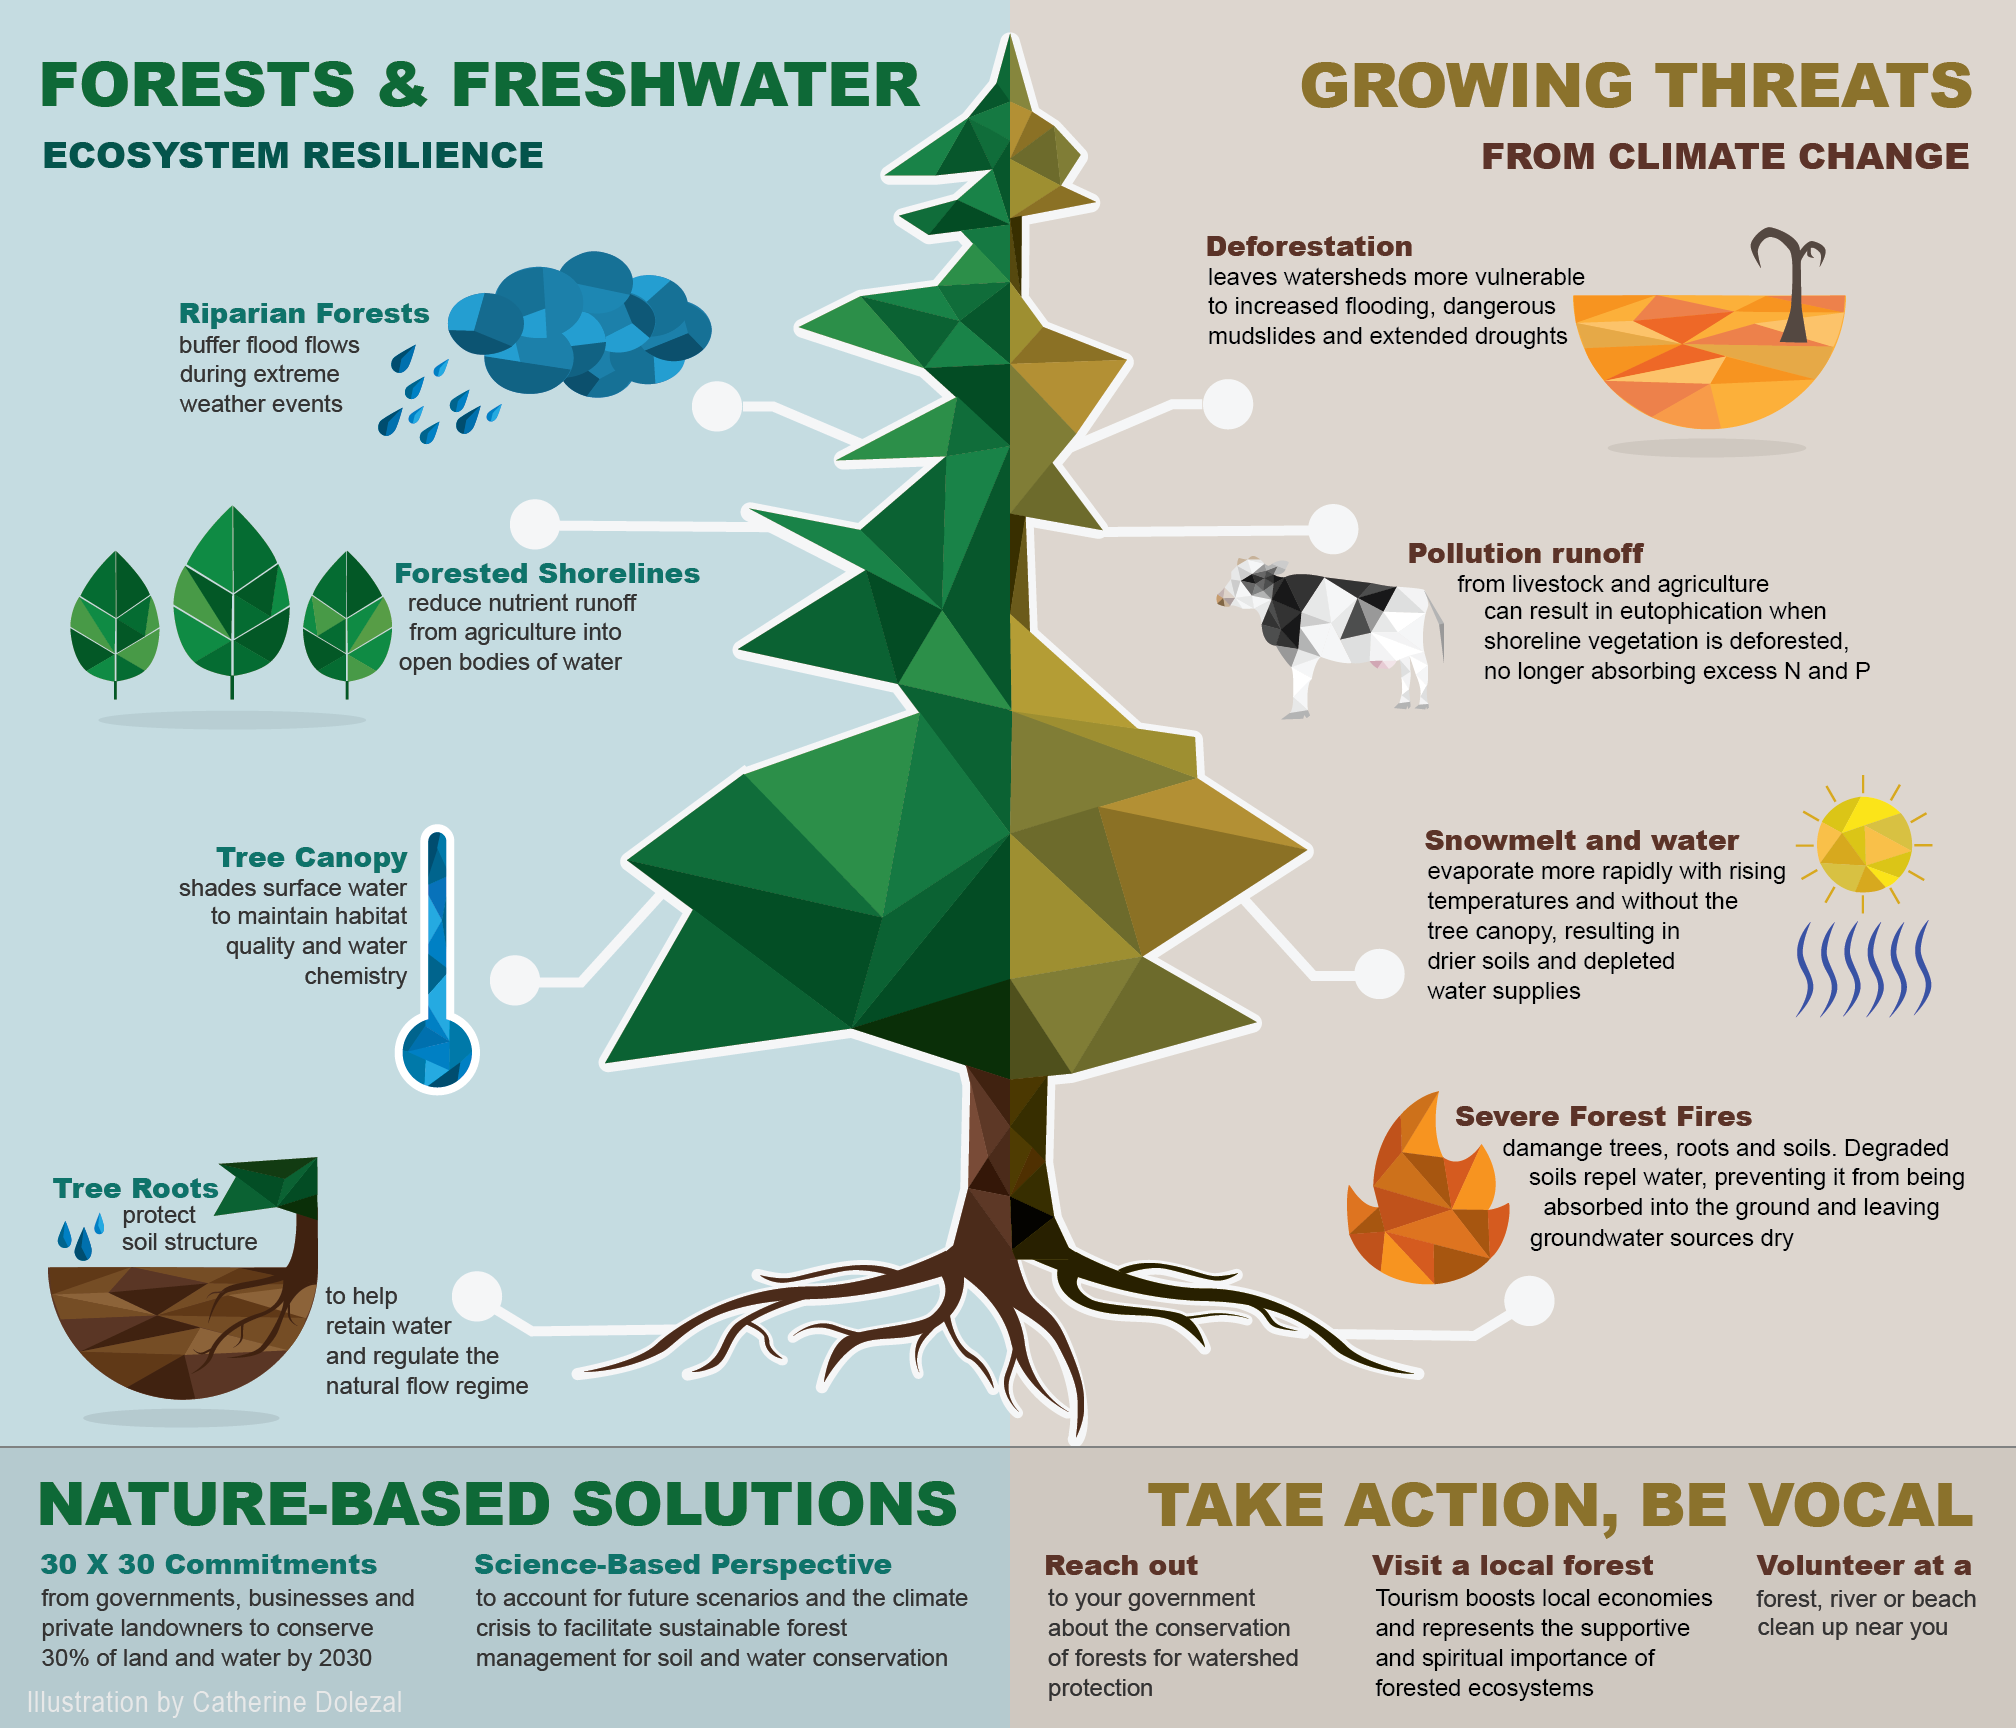 Infographic showing how forests and fresh-water ecosystems are related to global environmental threats.